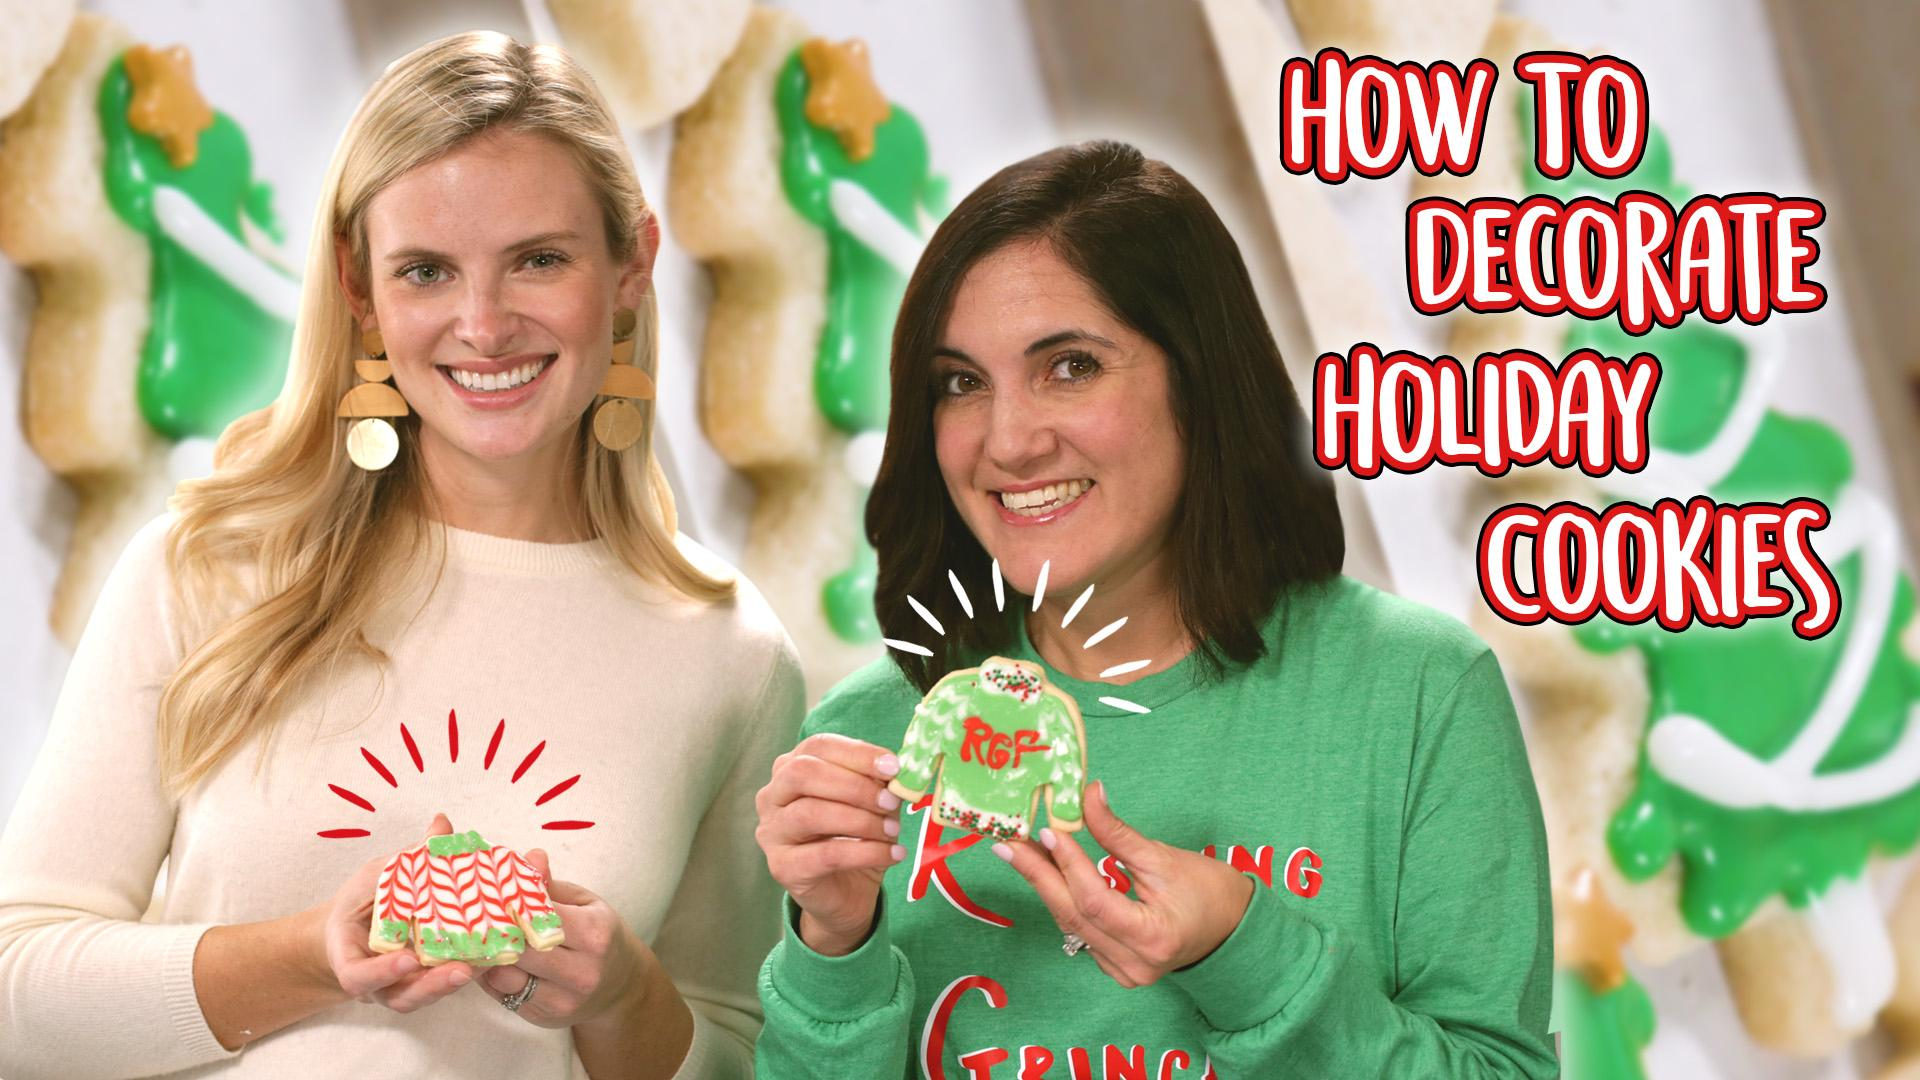 How to Decorate Christmas Cookies with Glaze Icing